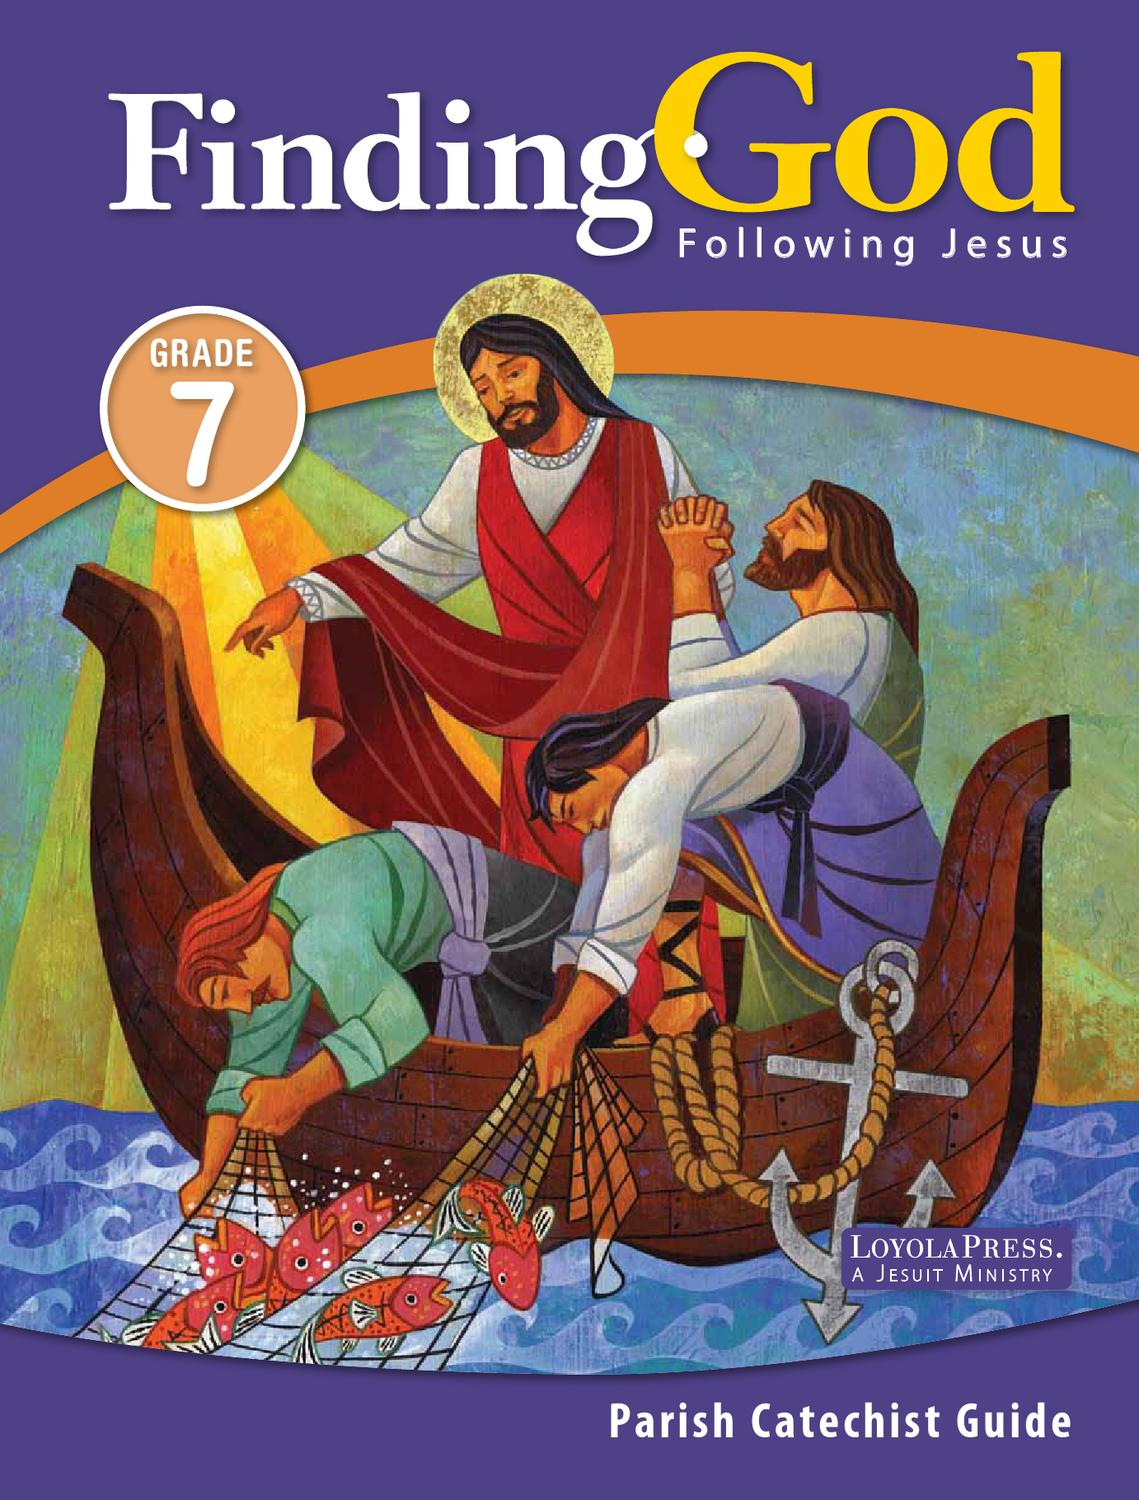 hight resolution of Finding God 2013 Grade 7 Parish Catechist Guide   PART 1 by Loyola Press -  issuu